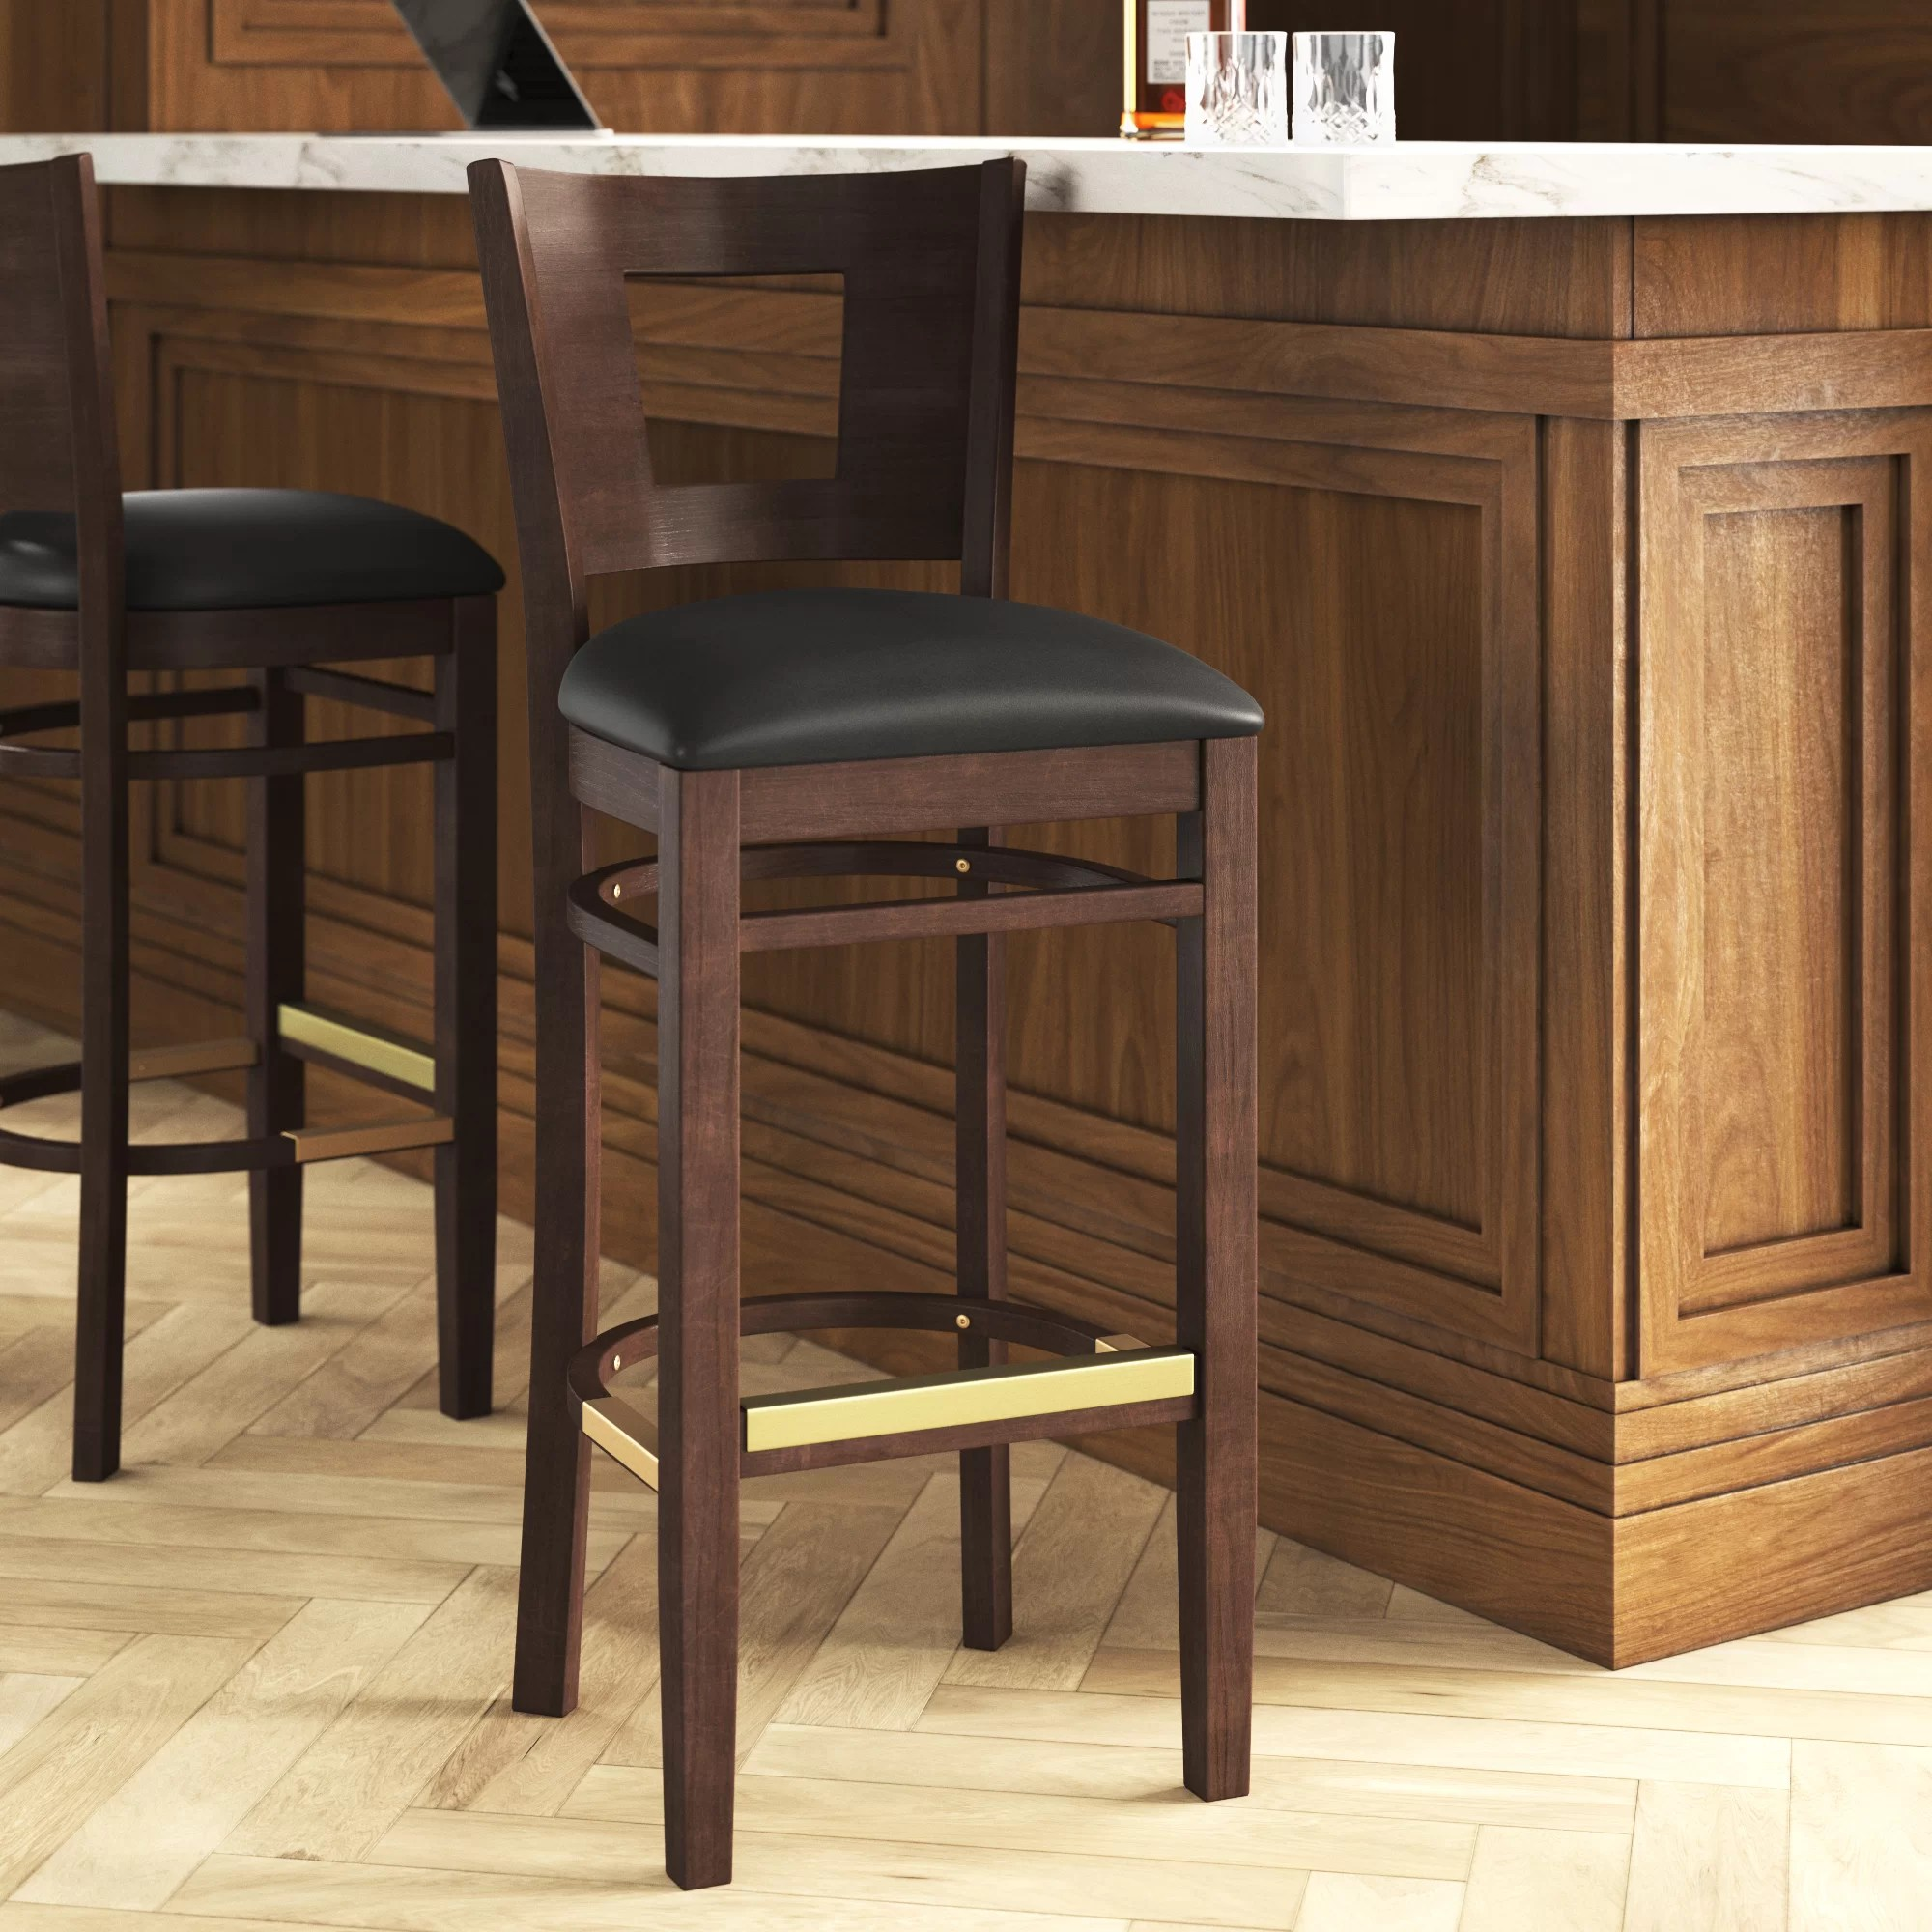 Full Back H D Restaurant Supply Inc Bar Stools Counter Stools You Ll Love In 2021 Wayfair